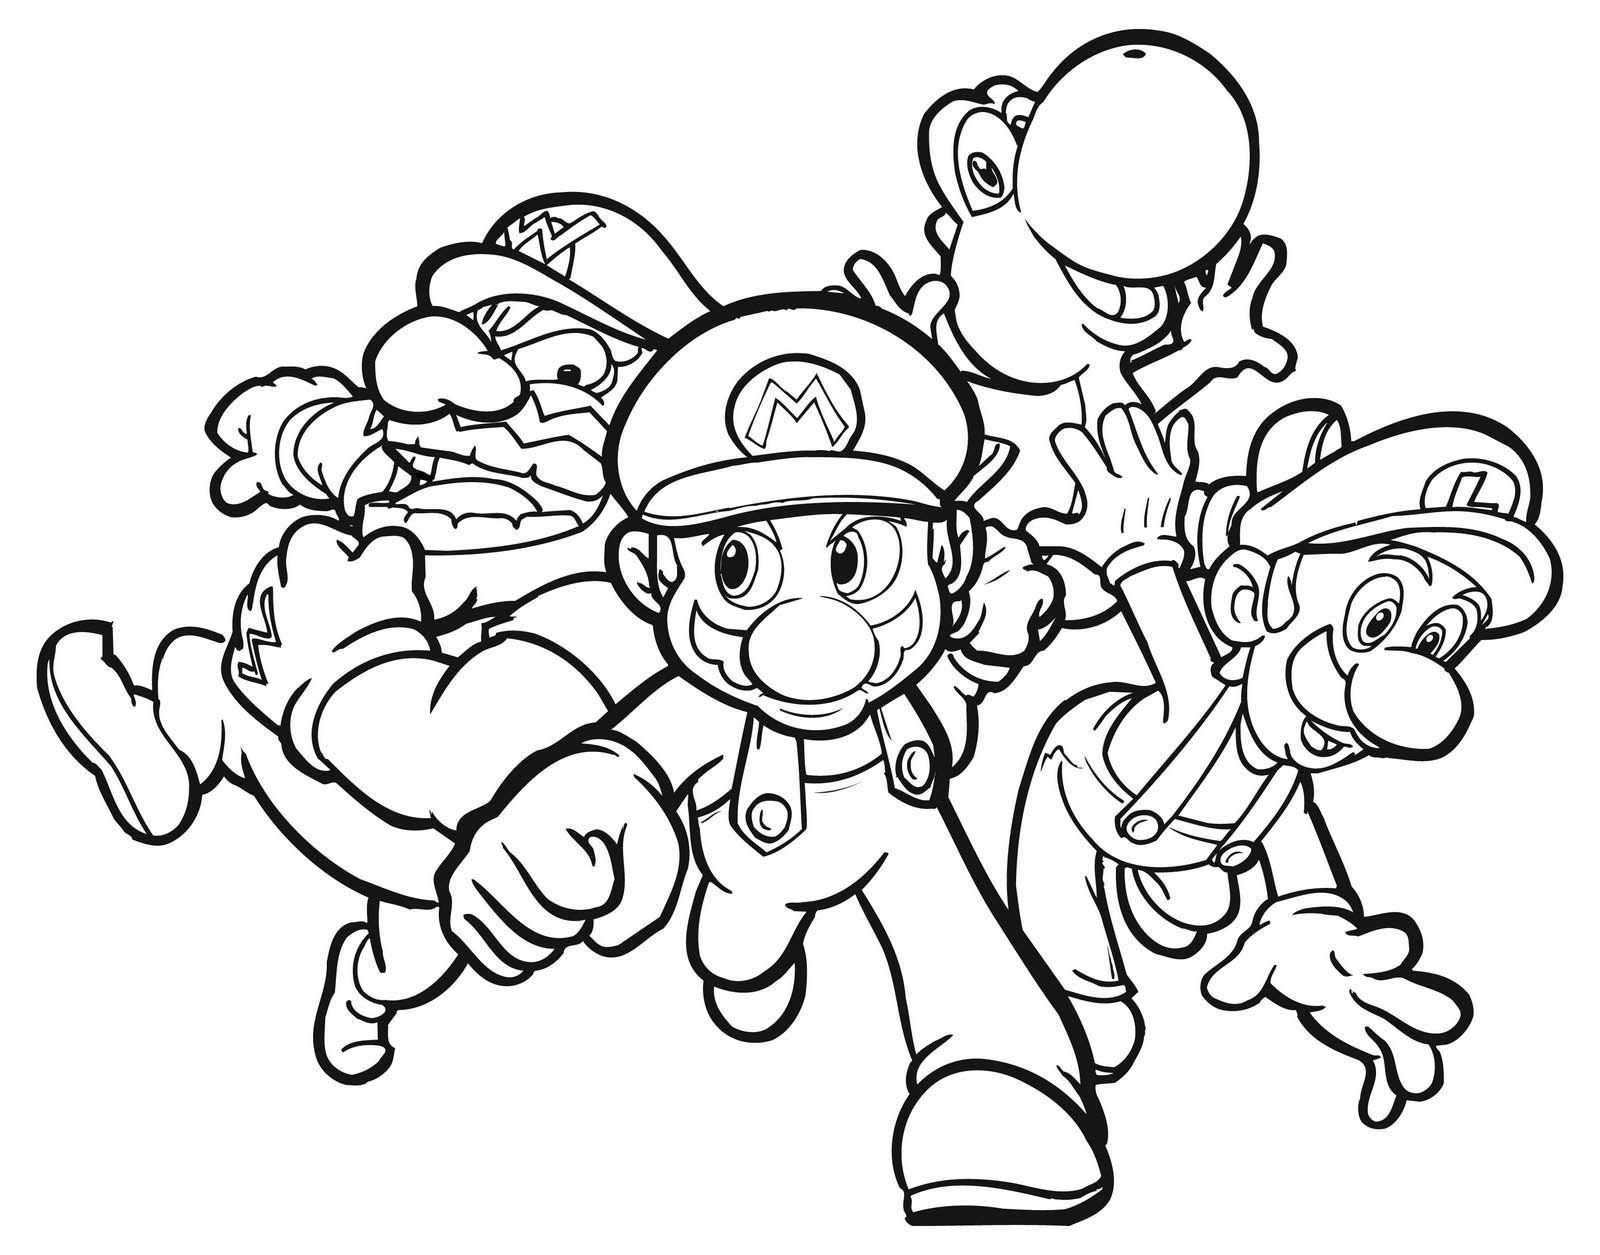 httpcoloringscomario coloring pages for kids Colorings